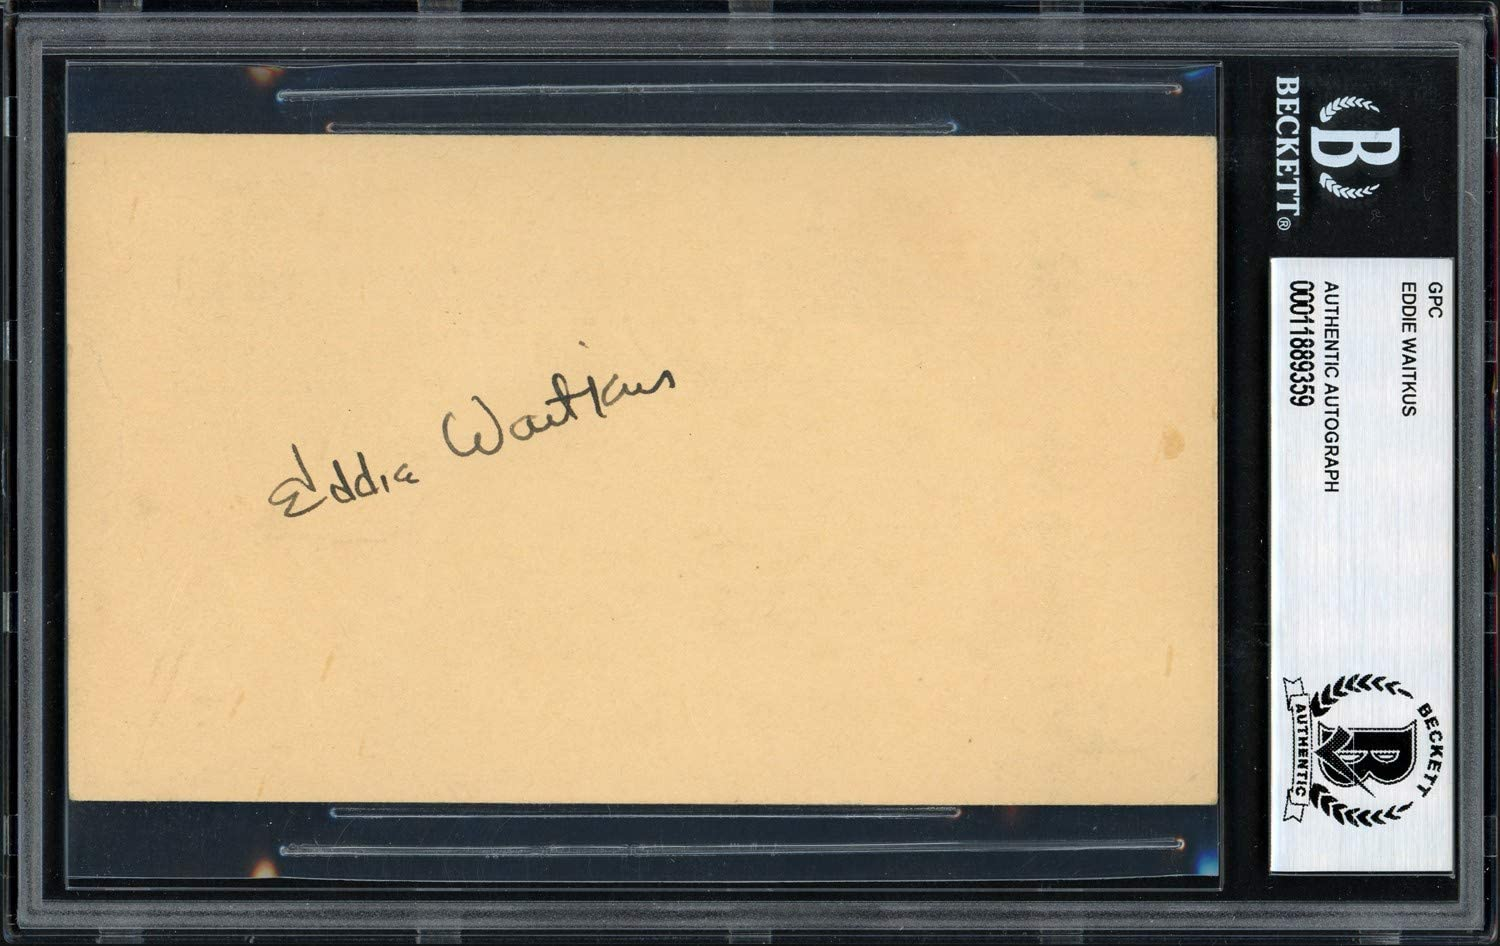 Eddie Waitkus Autographed 3.5x5.5 Government Postcard The Natural Beckett BAS #11889359